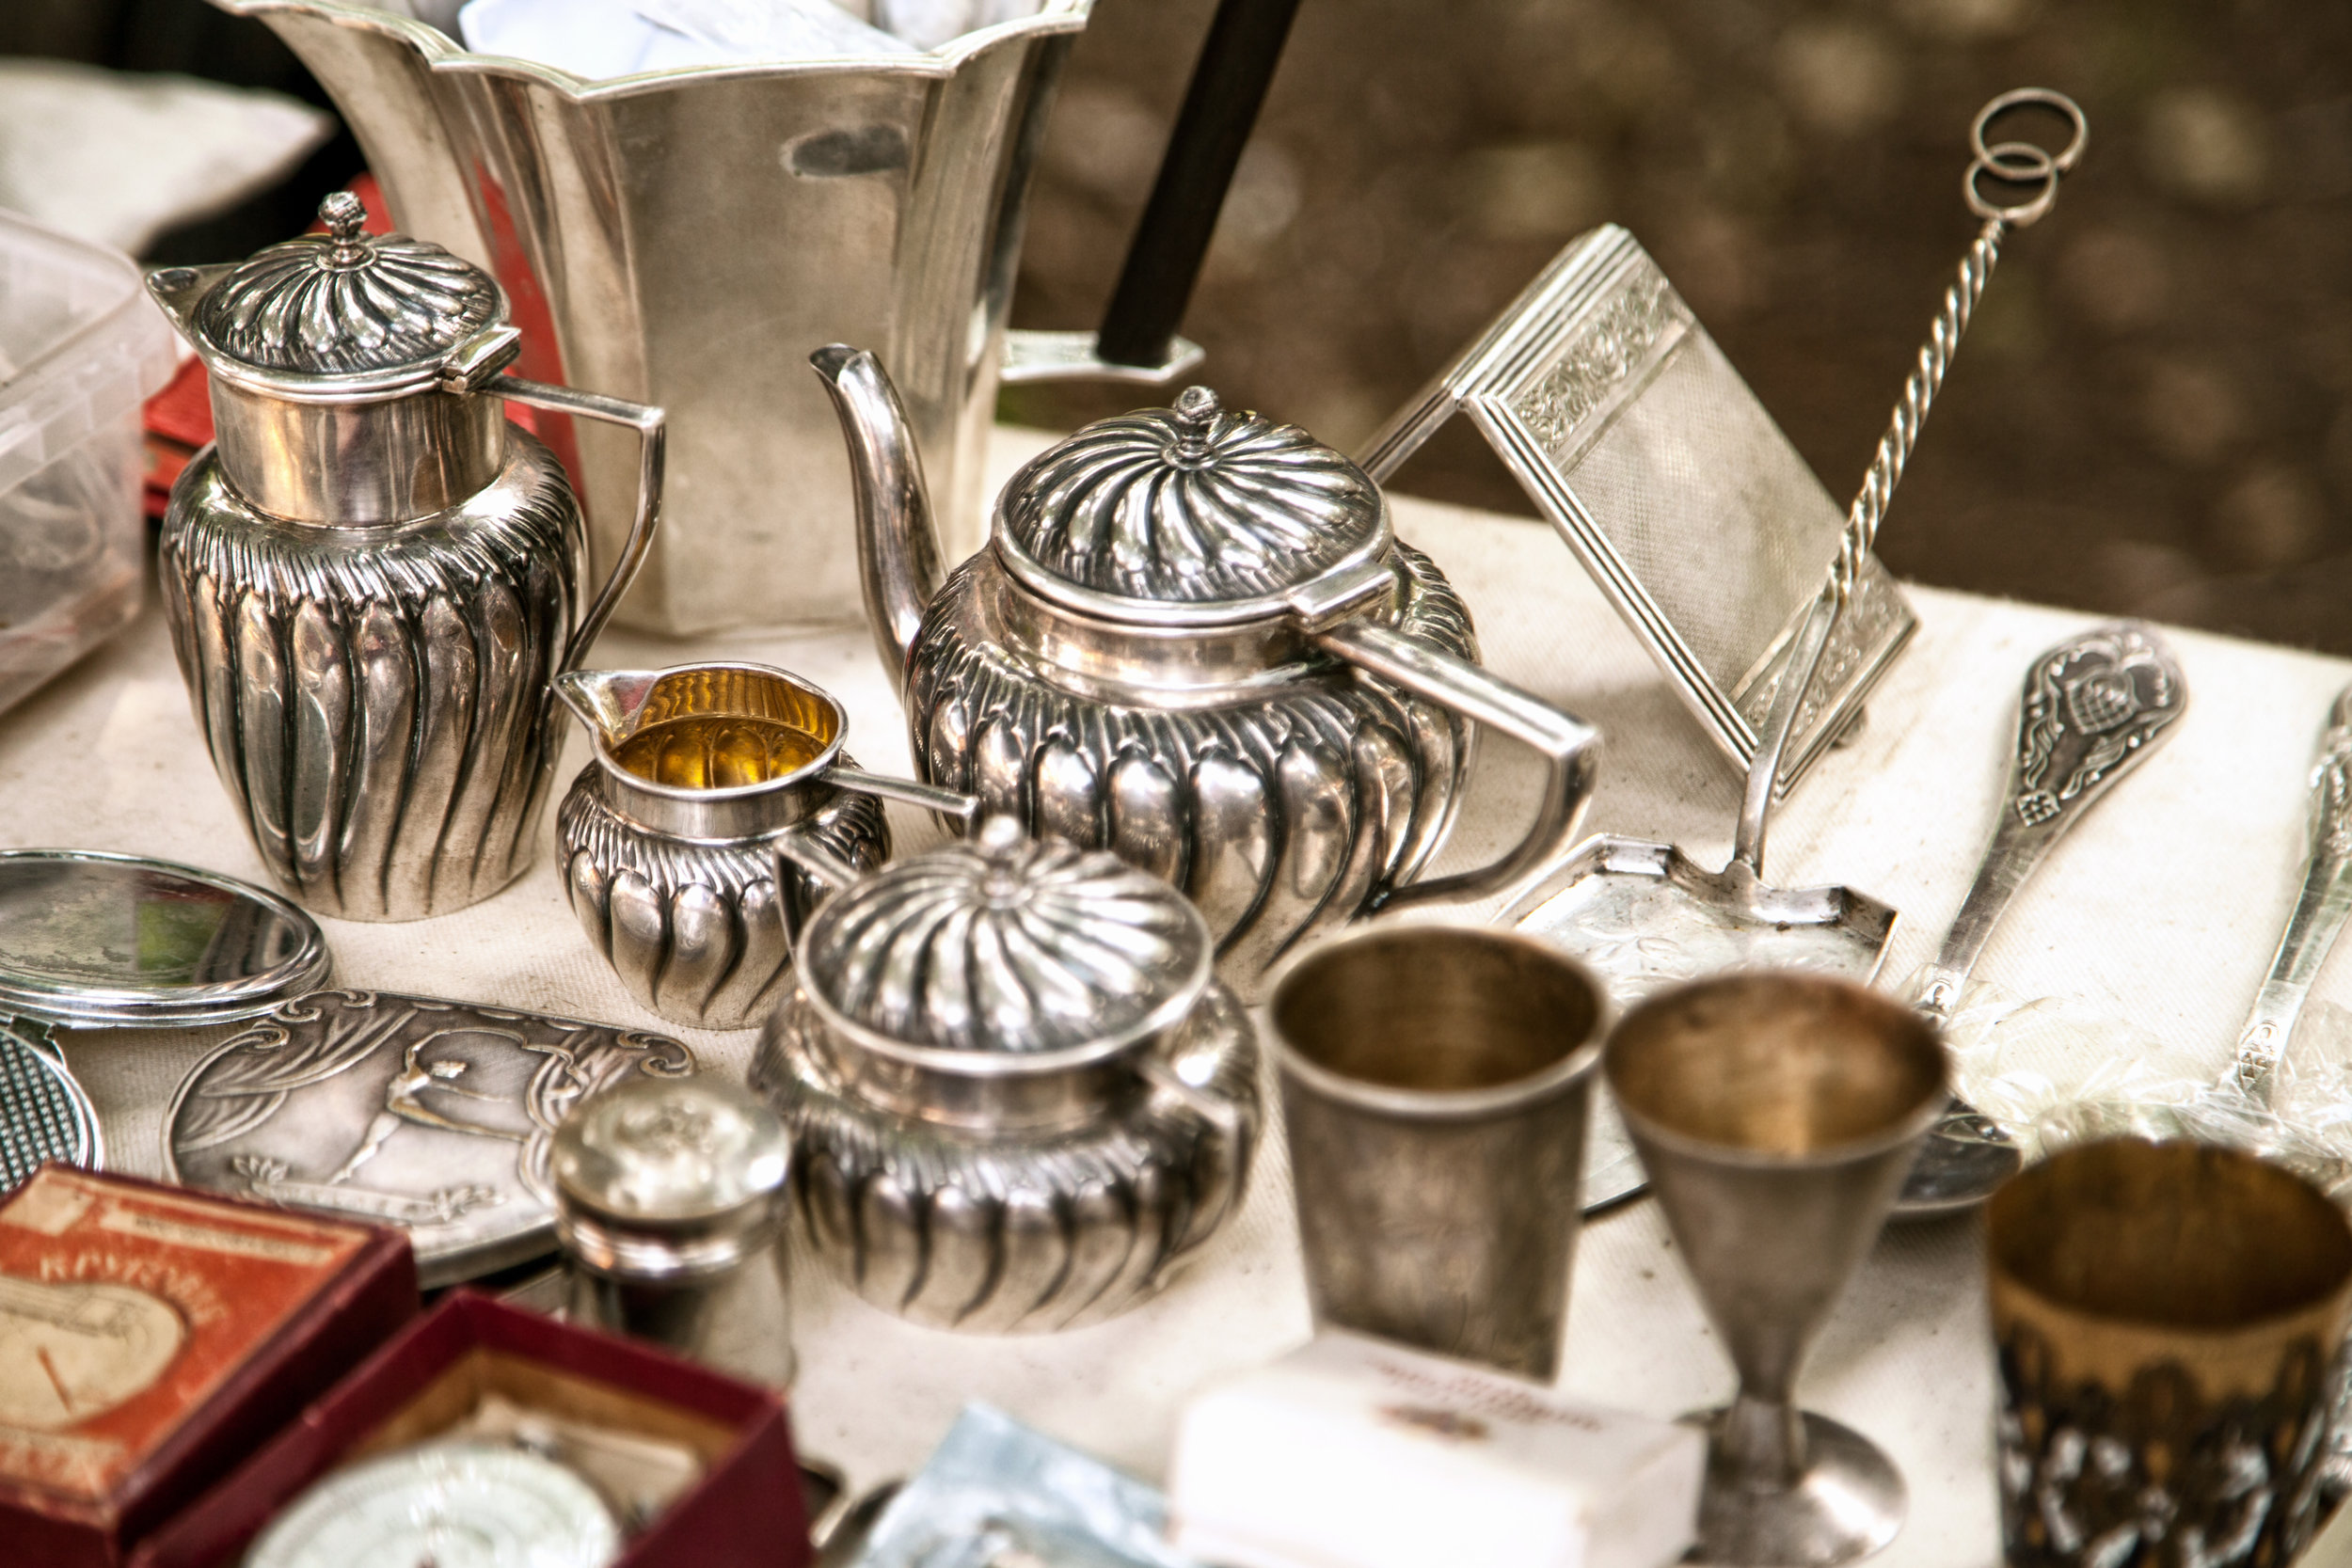 Antique-silver-teapots,-creamer-and-other-utensils-at-a-flea-market-842470122_3000x2000.jpeg